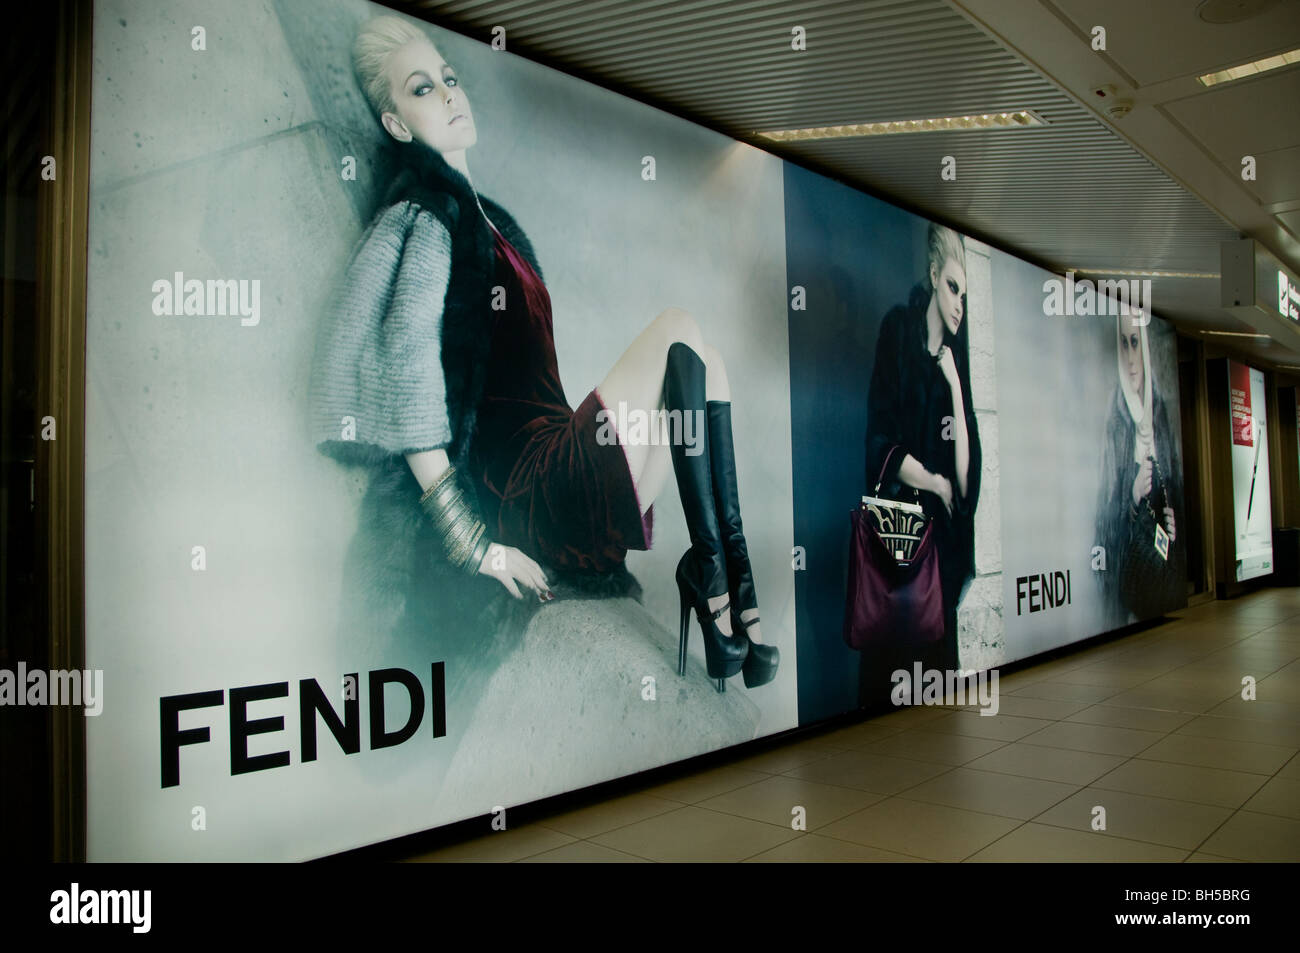 Fendi  fashion man woman young classy Airport Rome - Stock Image